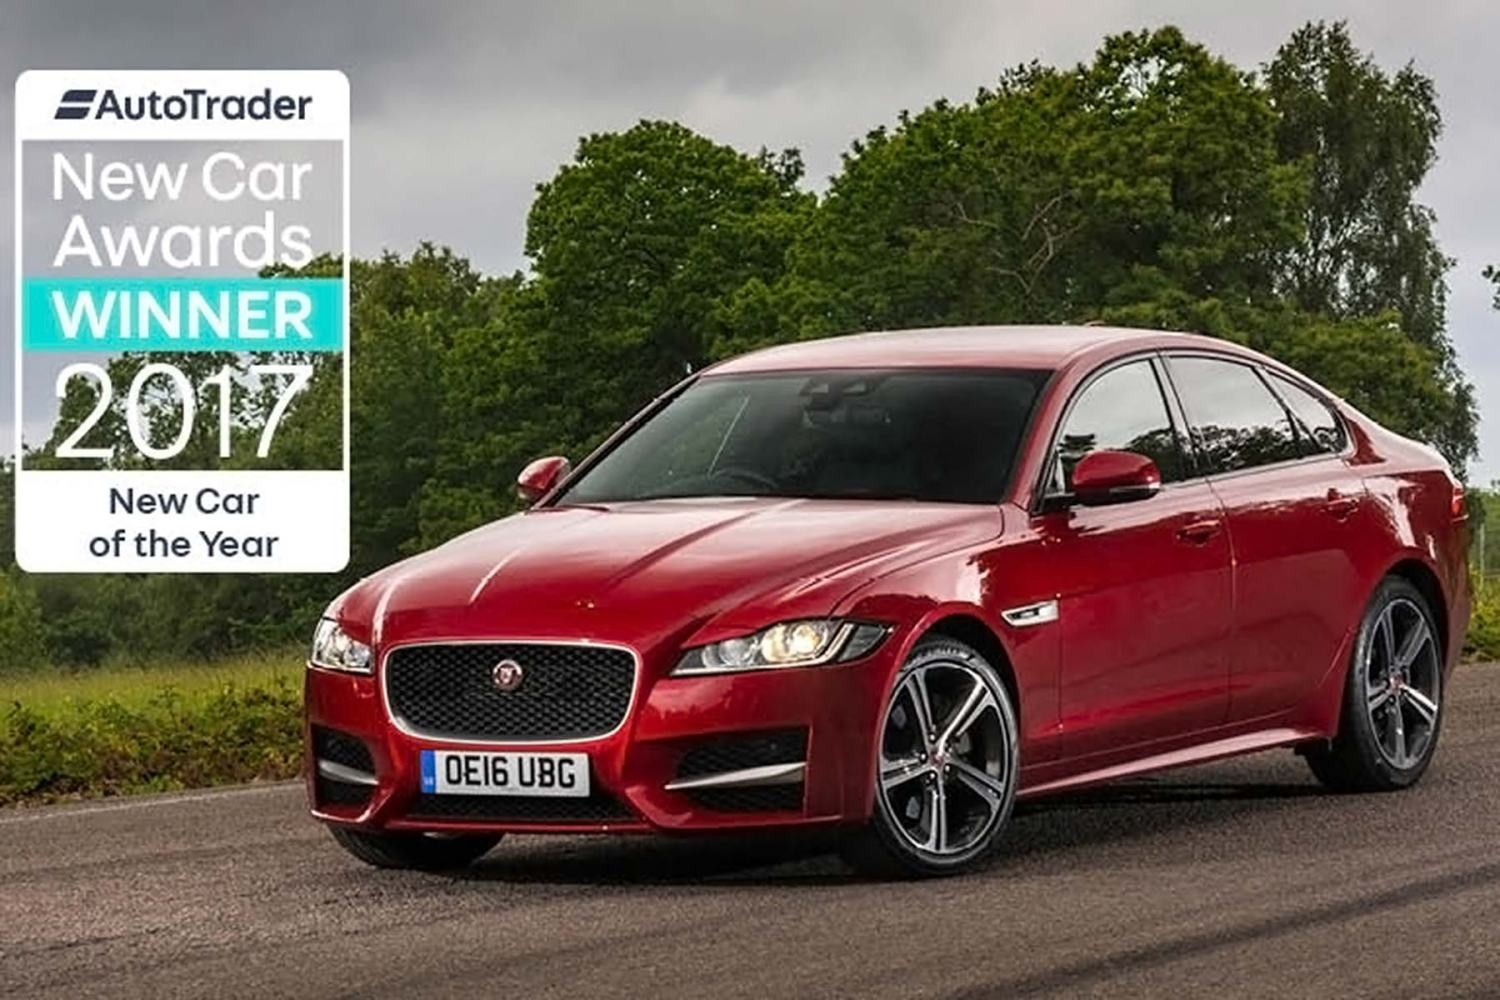 Auto Trader New Car of the Year 2017 - the Jaguar XF